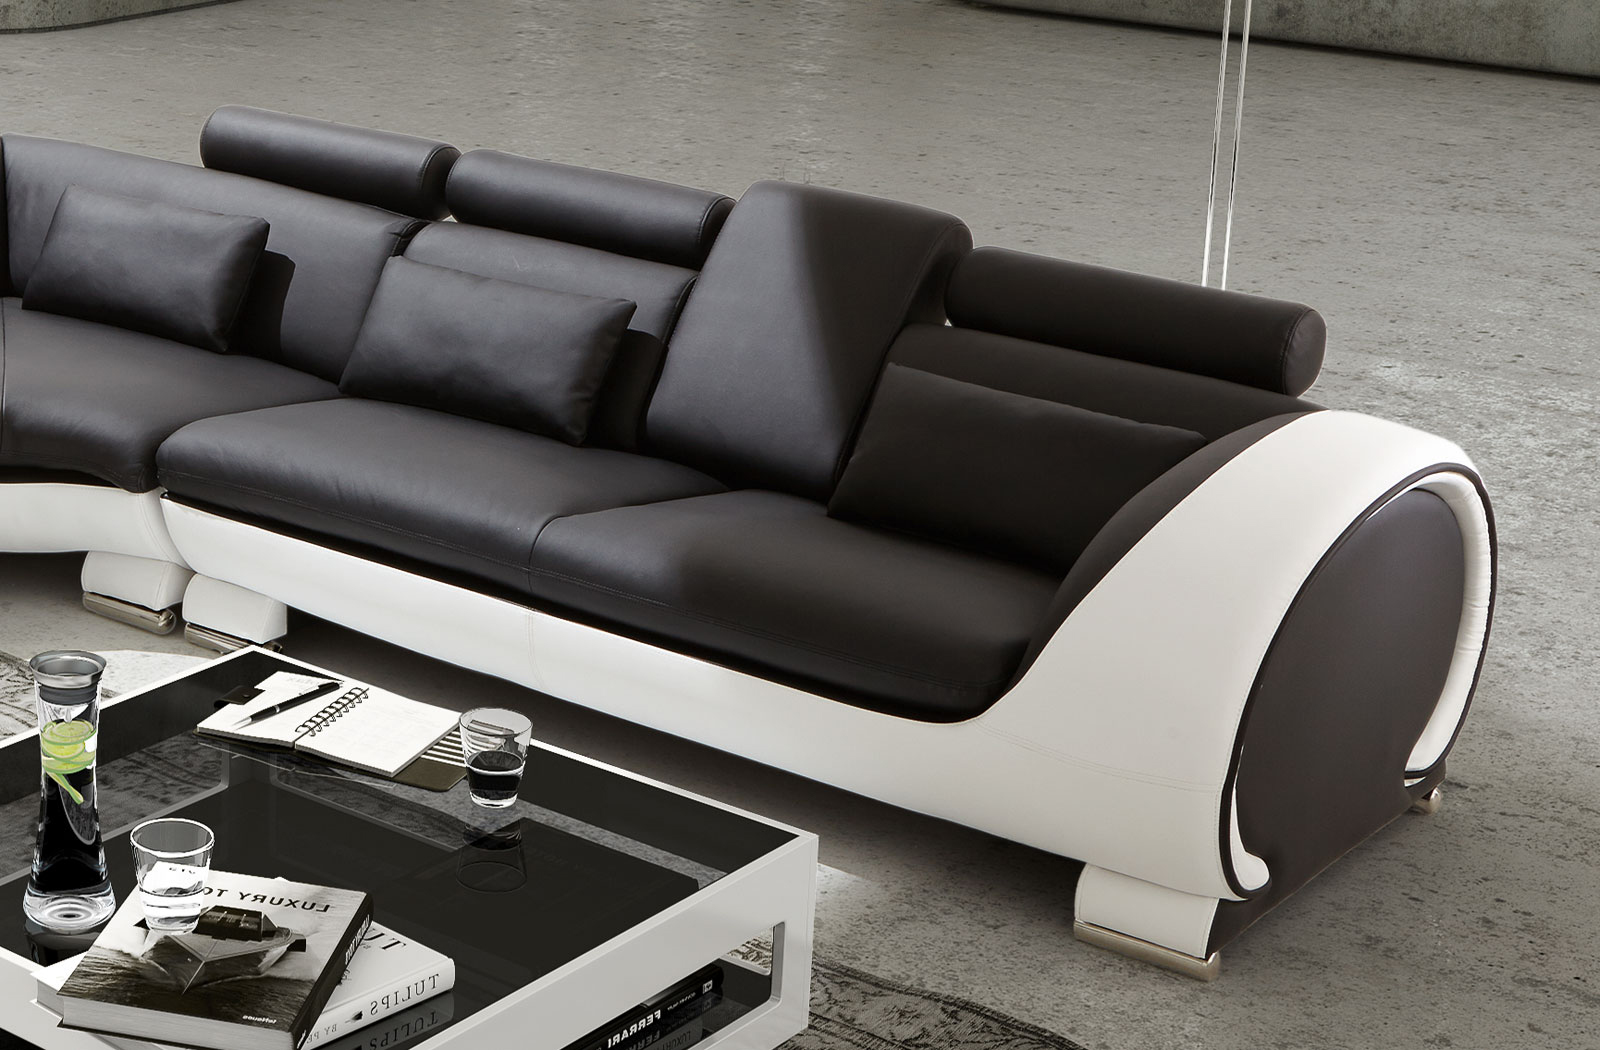 sam ecksofa schwarz wei vigo combi 4 couch 254 x 286 cm. Black Bedroom Furniture Sets. Home Design Ideas